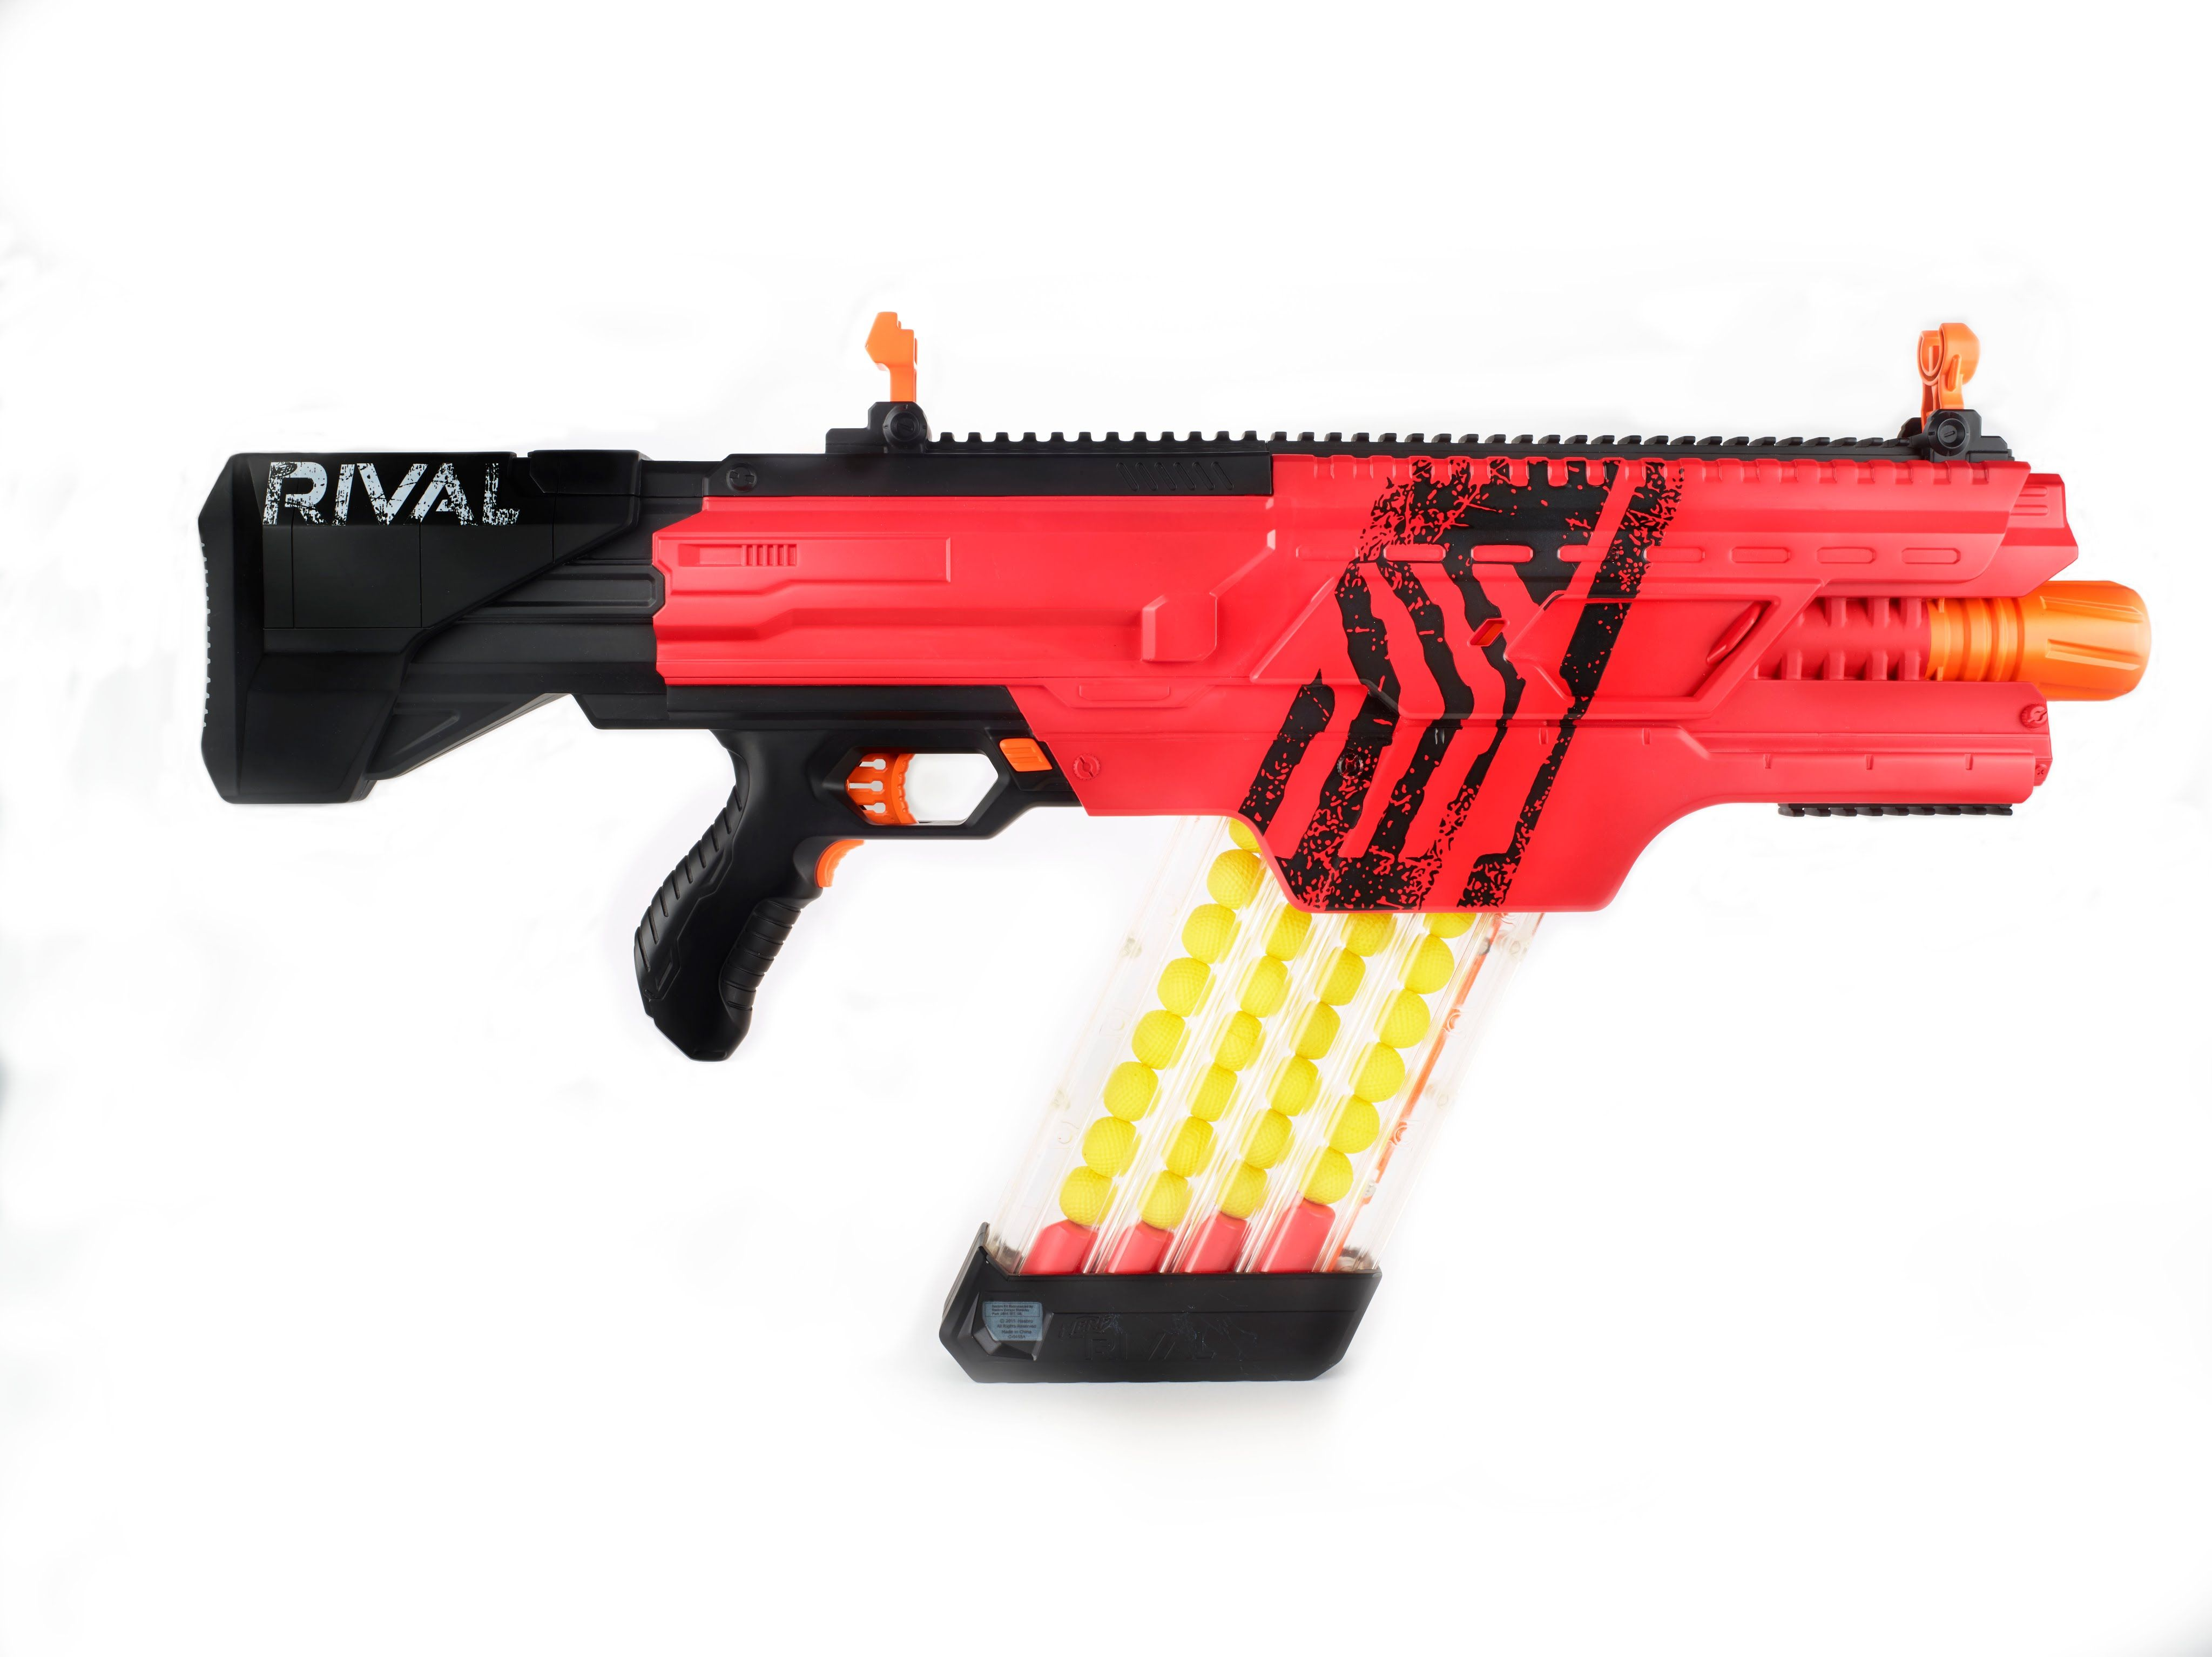 Buzzing: This Nerf Gun Fires at 68 Miles Per Hour